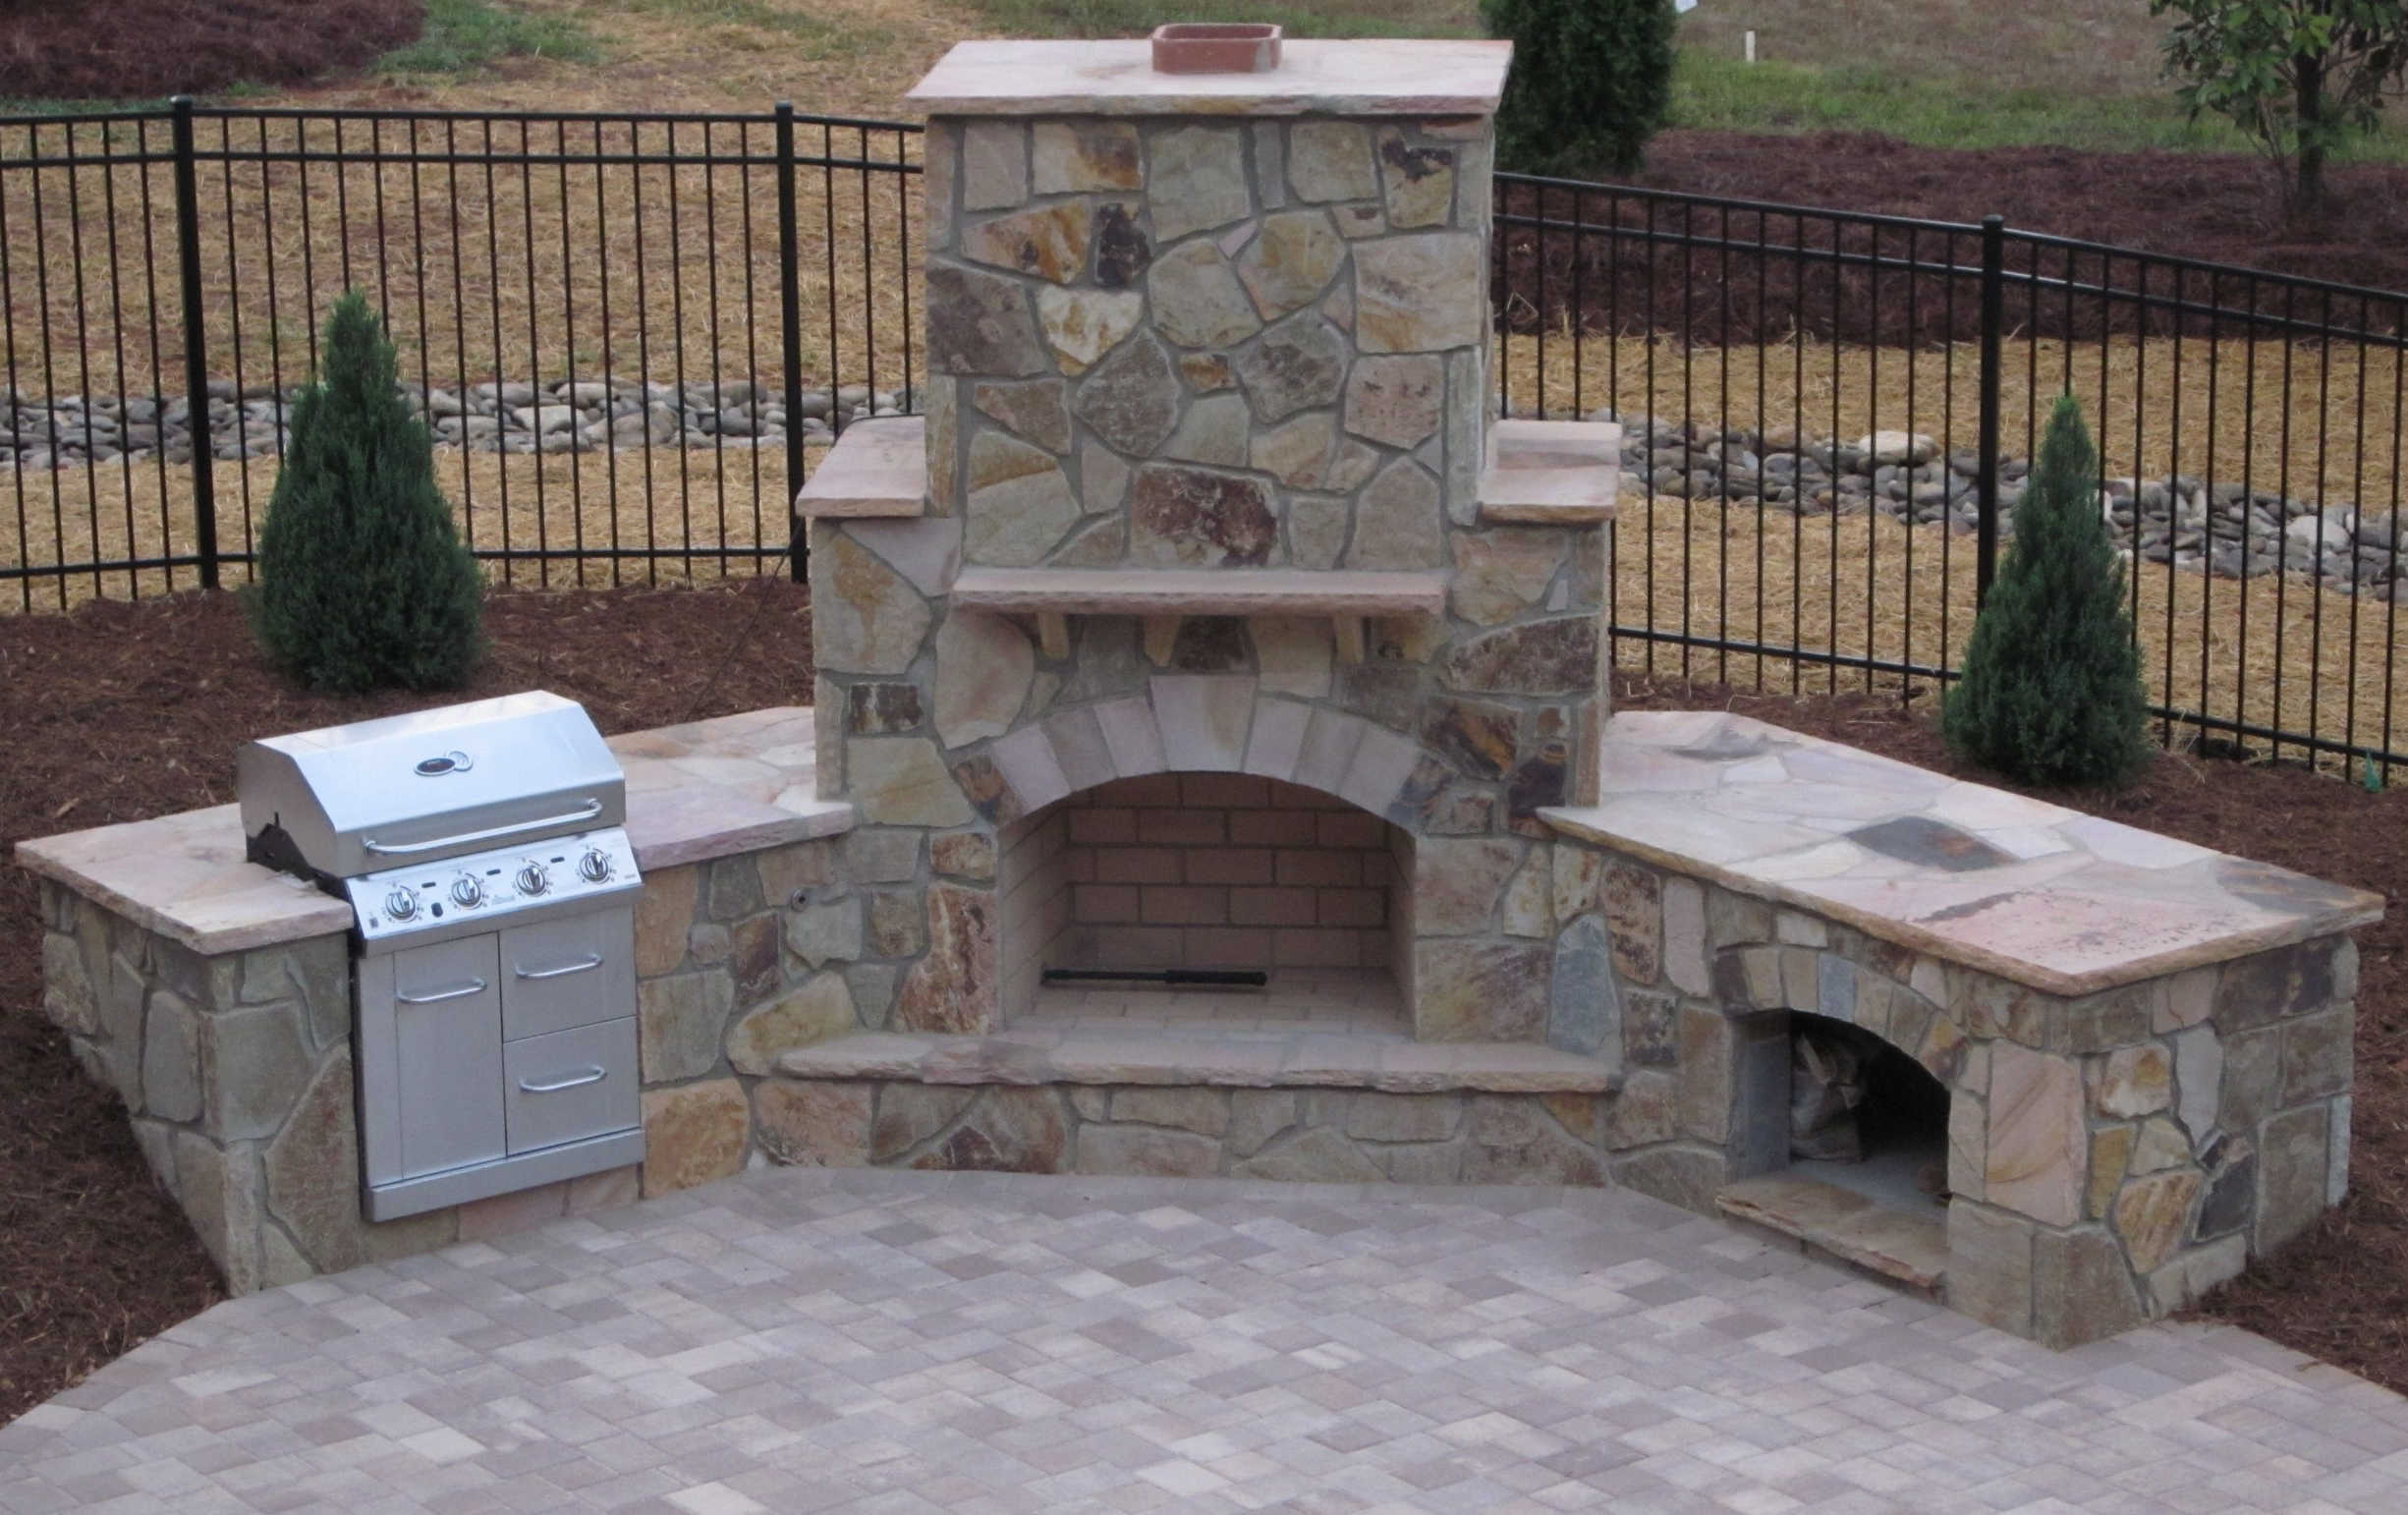 How to build an outdoor fireplace step by step guide for Outdoor fireplace designs plans